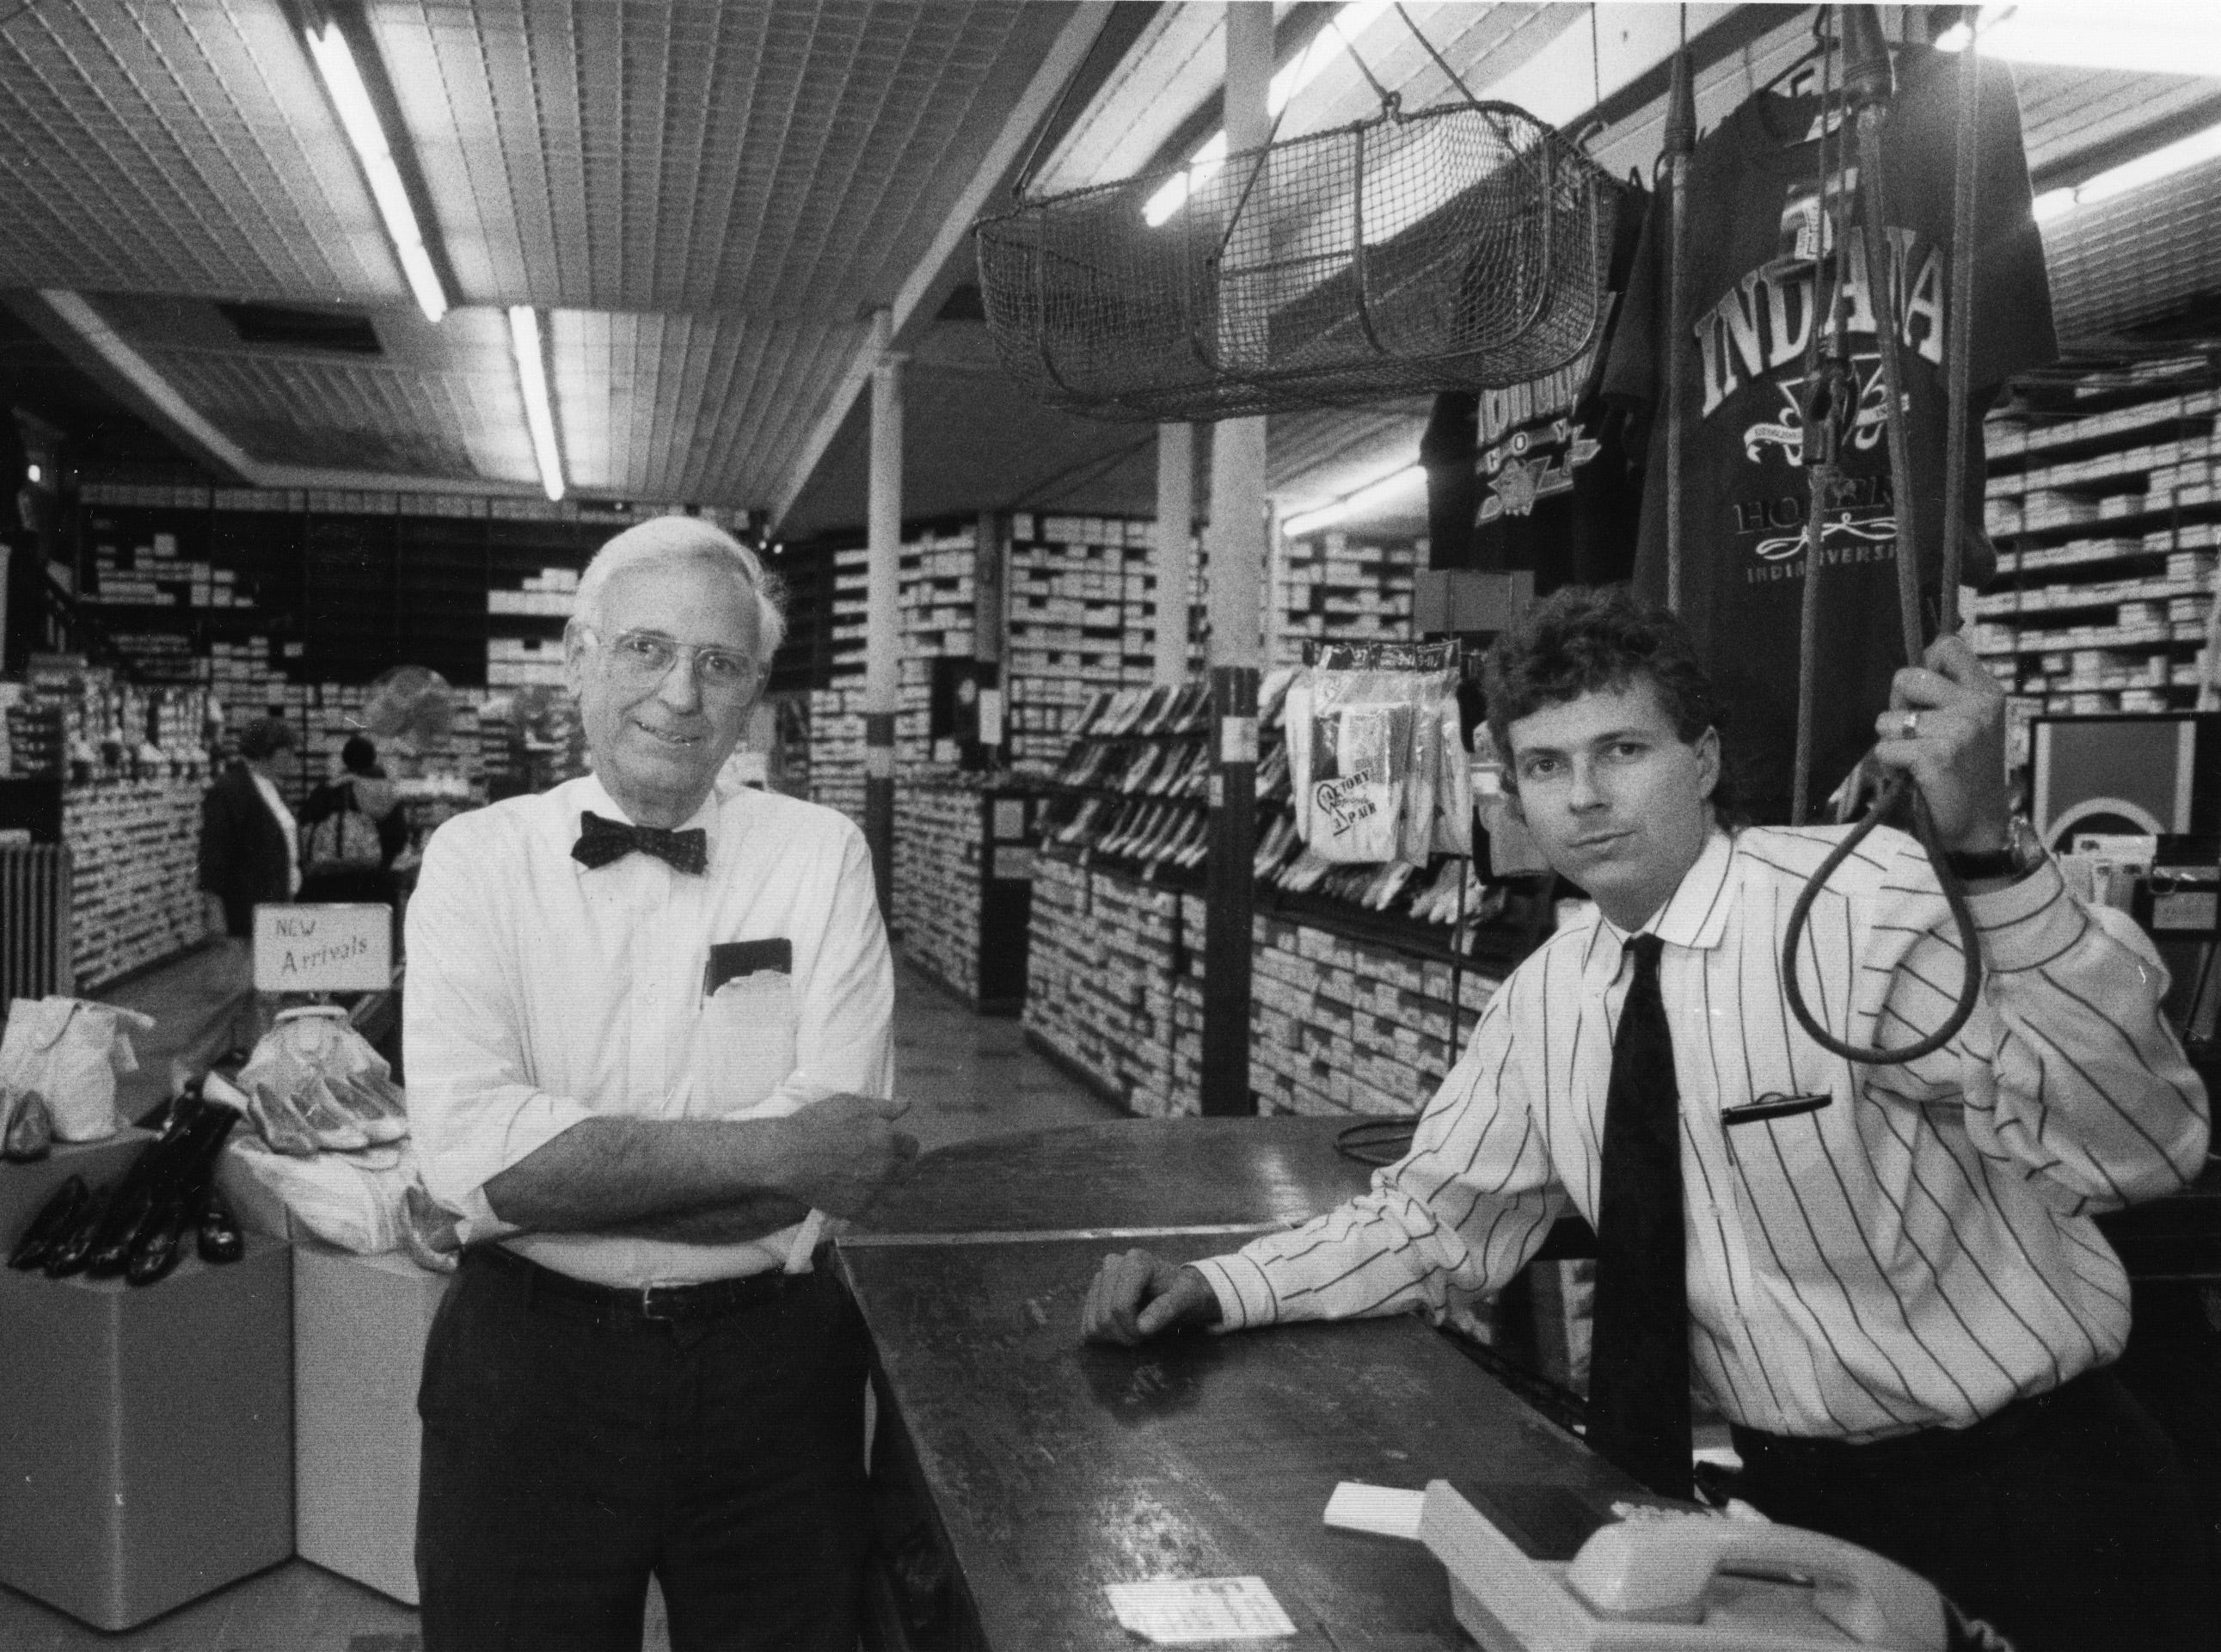 Harry Stout and son Brad at Stout's Shoe Store on Massachusetts Ave. March 26, 1992. Harry Stout dies February 21, 2013.